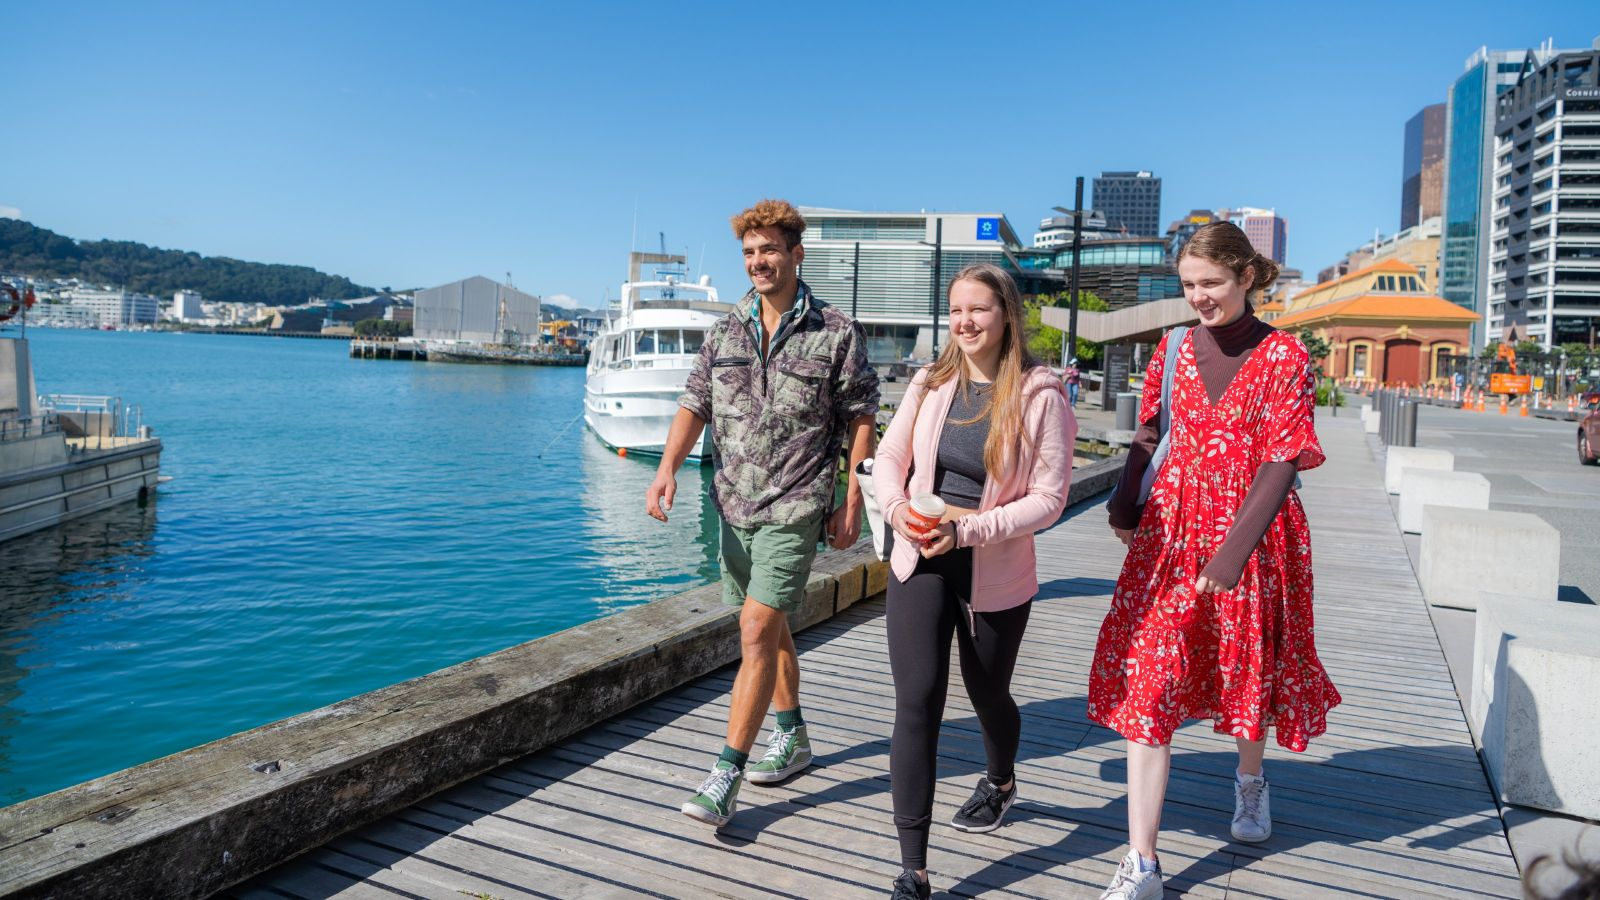 Three students walking together on the waterfront, by sunny weather.